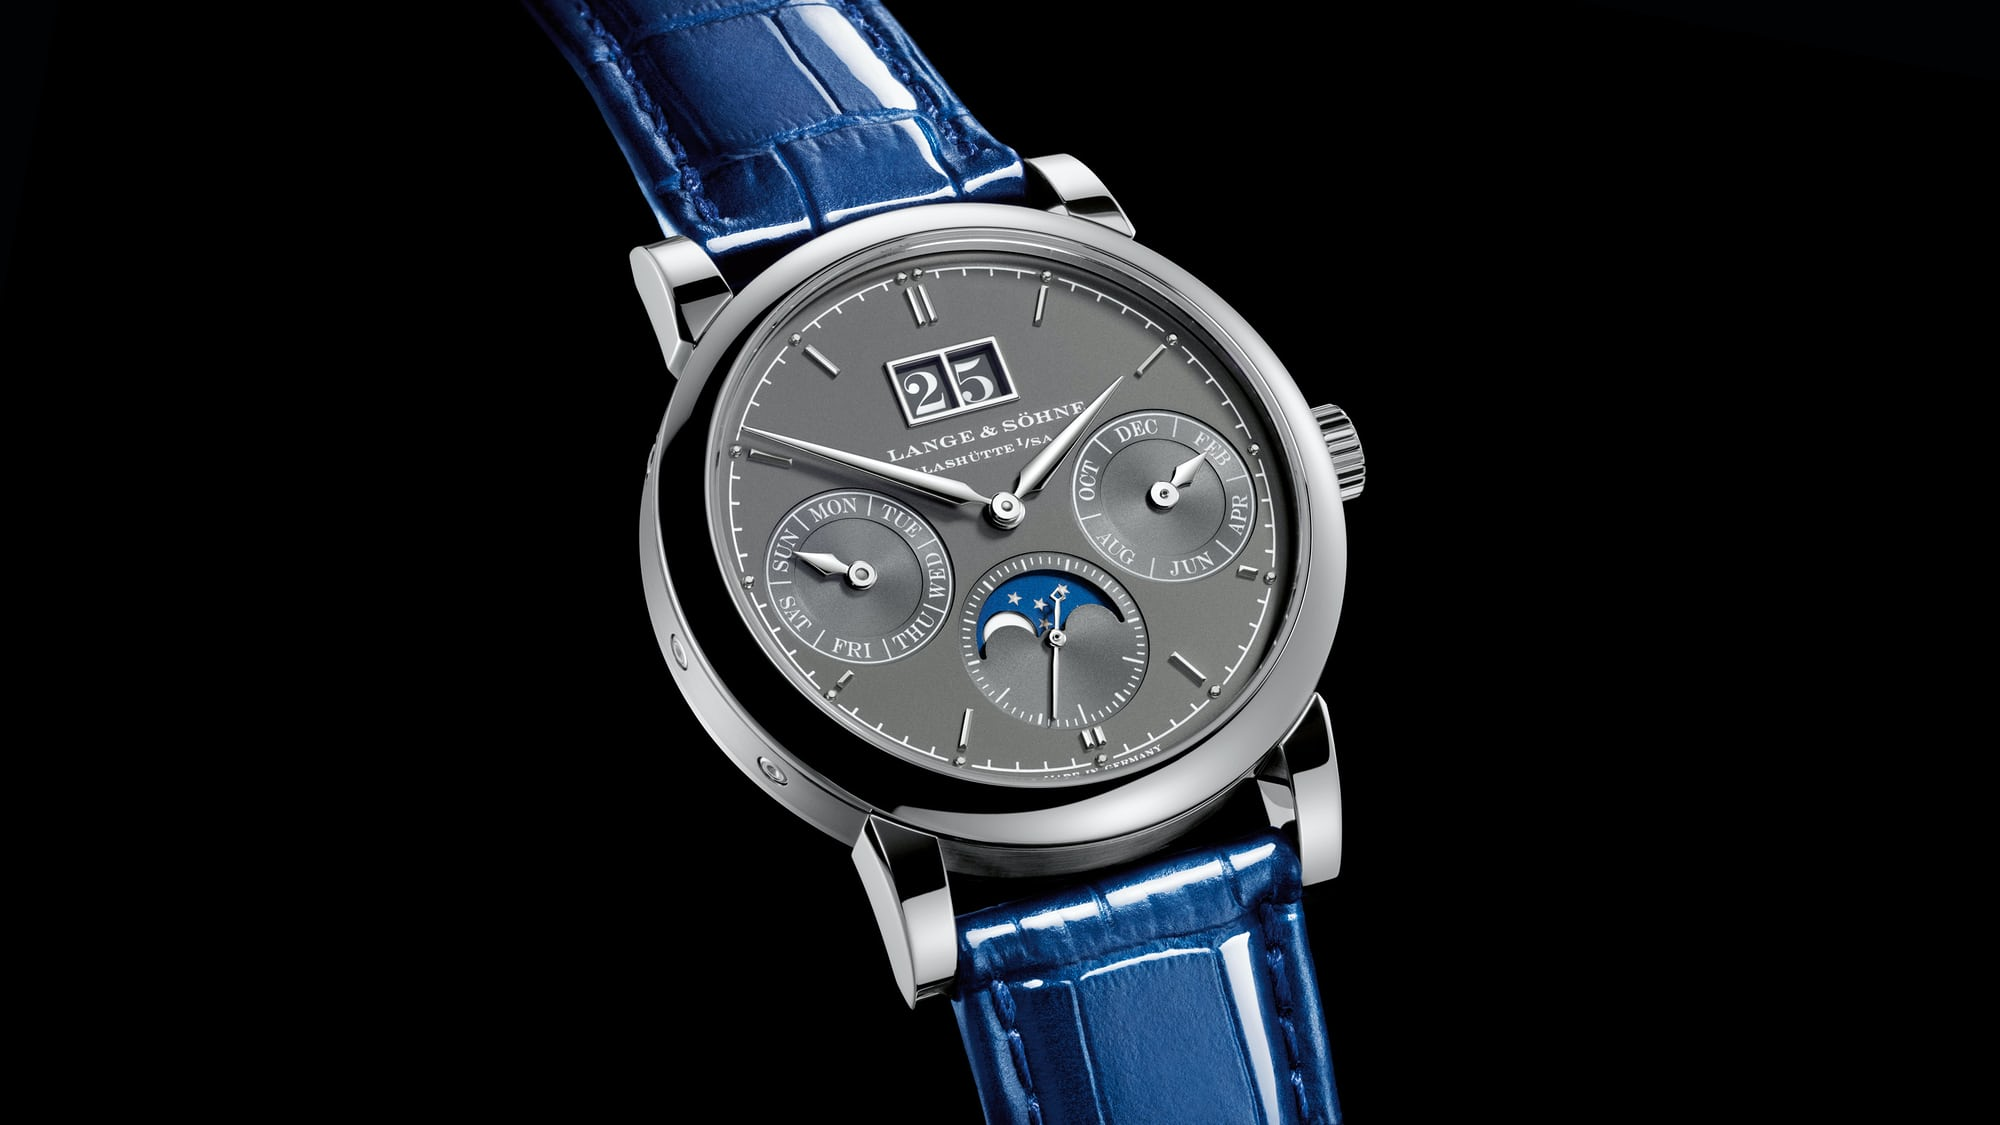 introducing: the a. lange & söhne saxonia annual calendar u.s. boutique exclusive Introducing: The A. Lange & Söhne Saxonia Annual Calendar U.S. Boutique Exclusive lange h